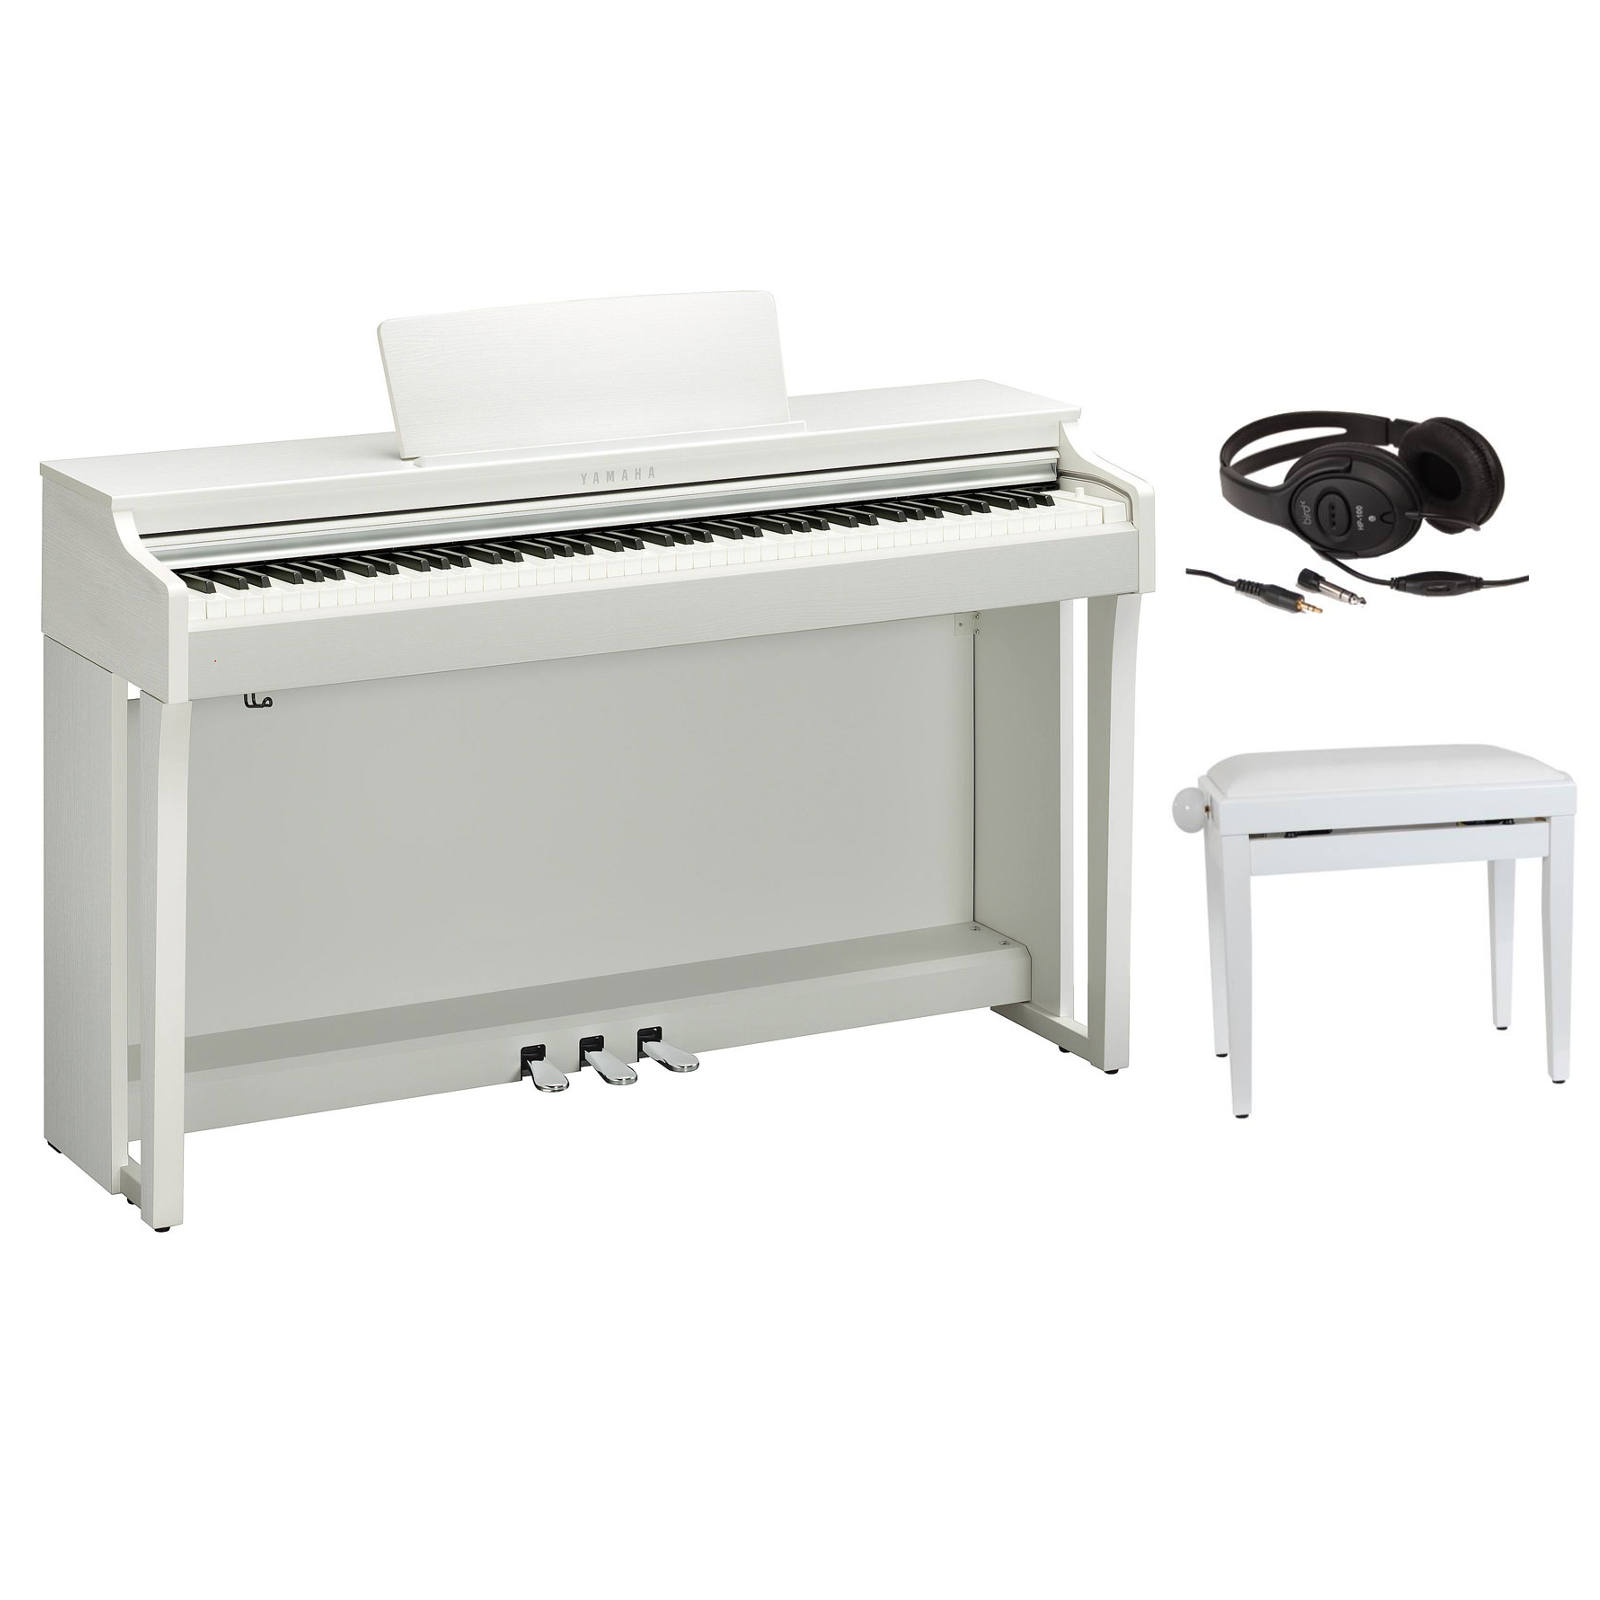 yamaha clavinova clp635wh blanc piano buy online. Black Bedroom Furniture Sets. Home Design Ideas